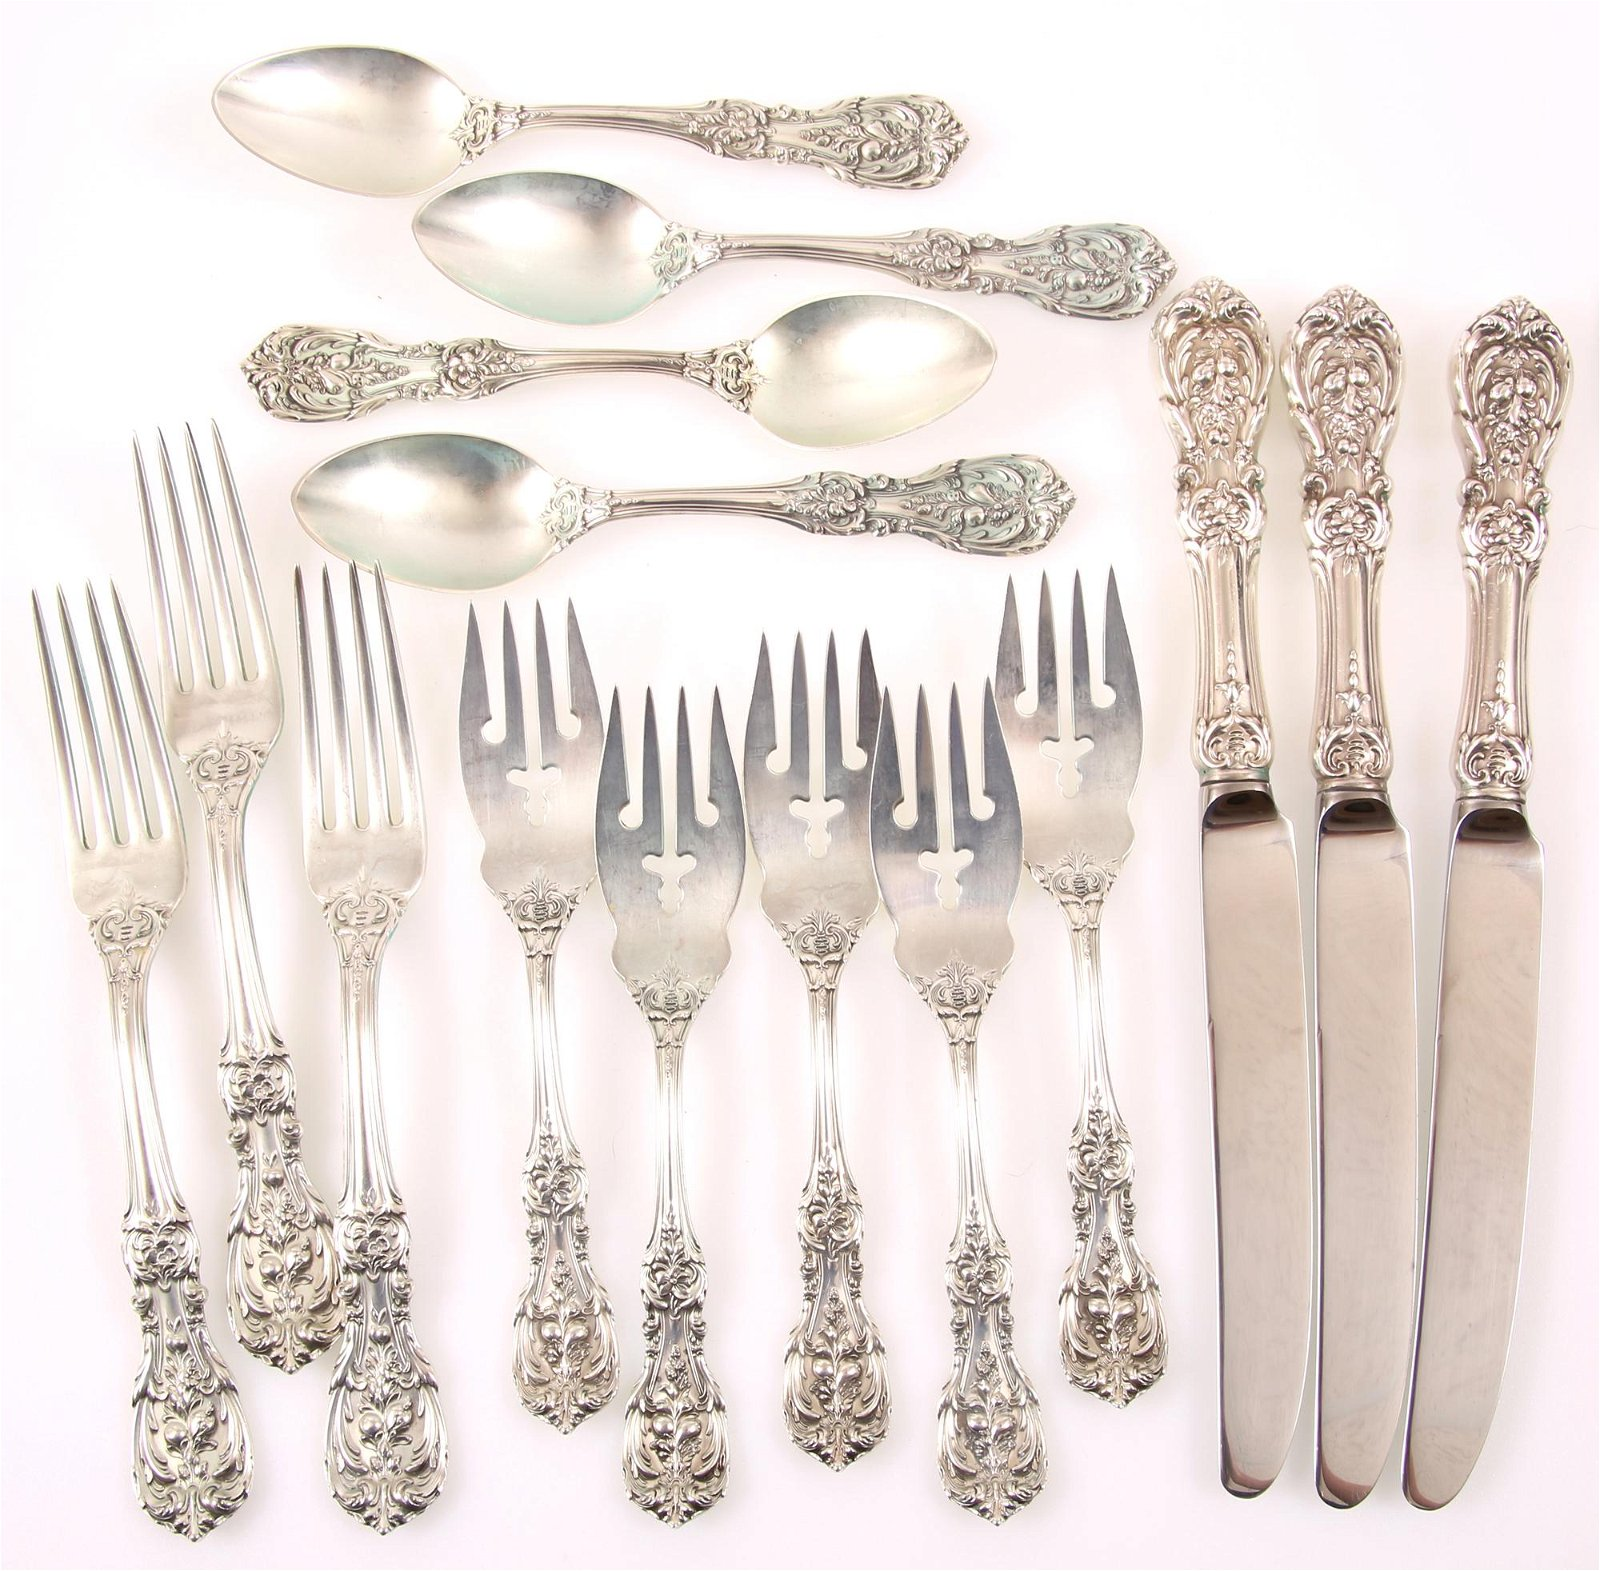 REED & BARTON STERLING SILVER FRANCIS I FLATWARE